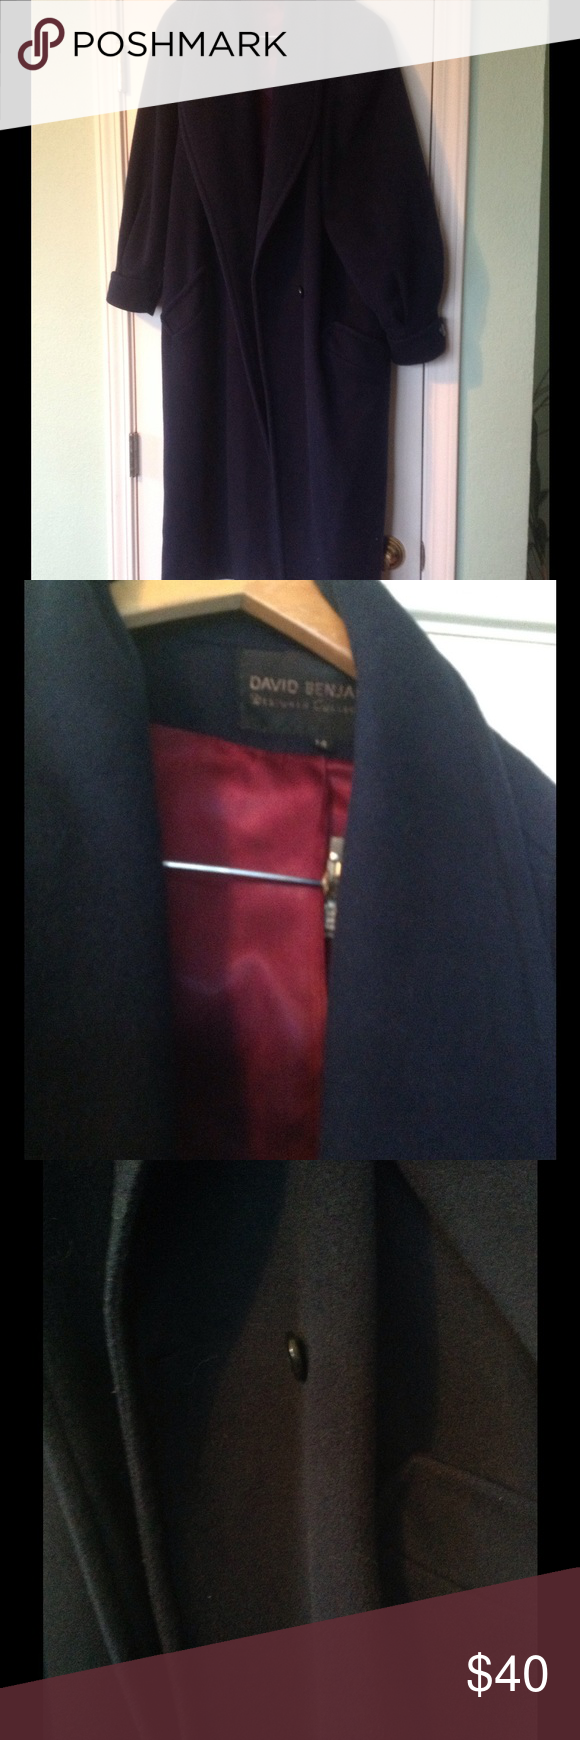 387ea6e2150a ... blue pea coat with button down buttons two side pockets burgundy satin  lining made of wool designer collection david benjamin Jackets   Coats Pea  Coats